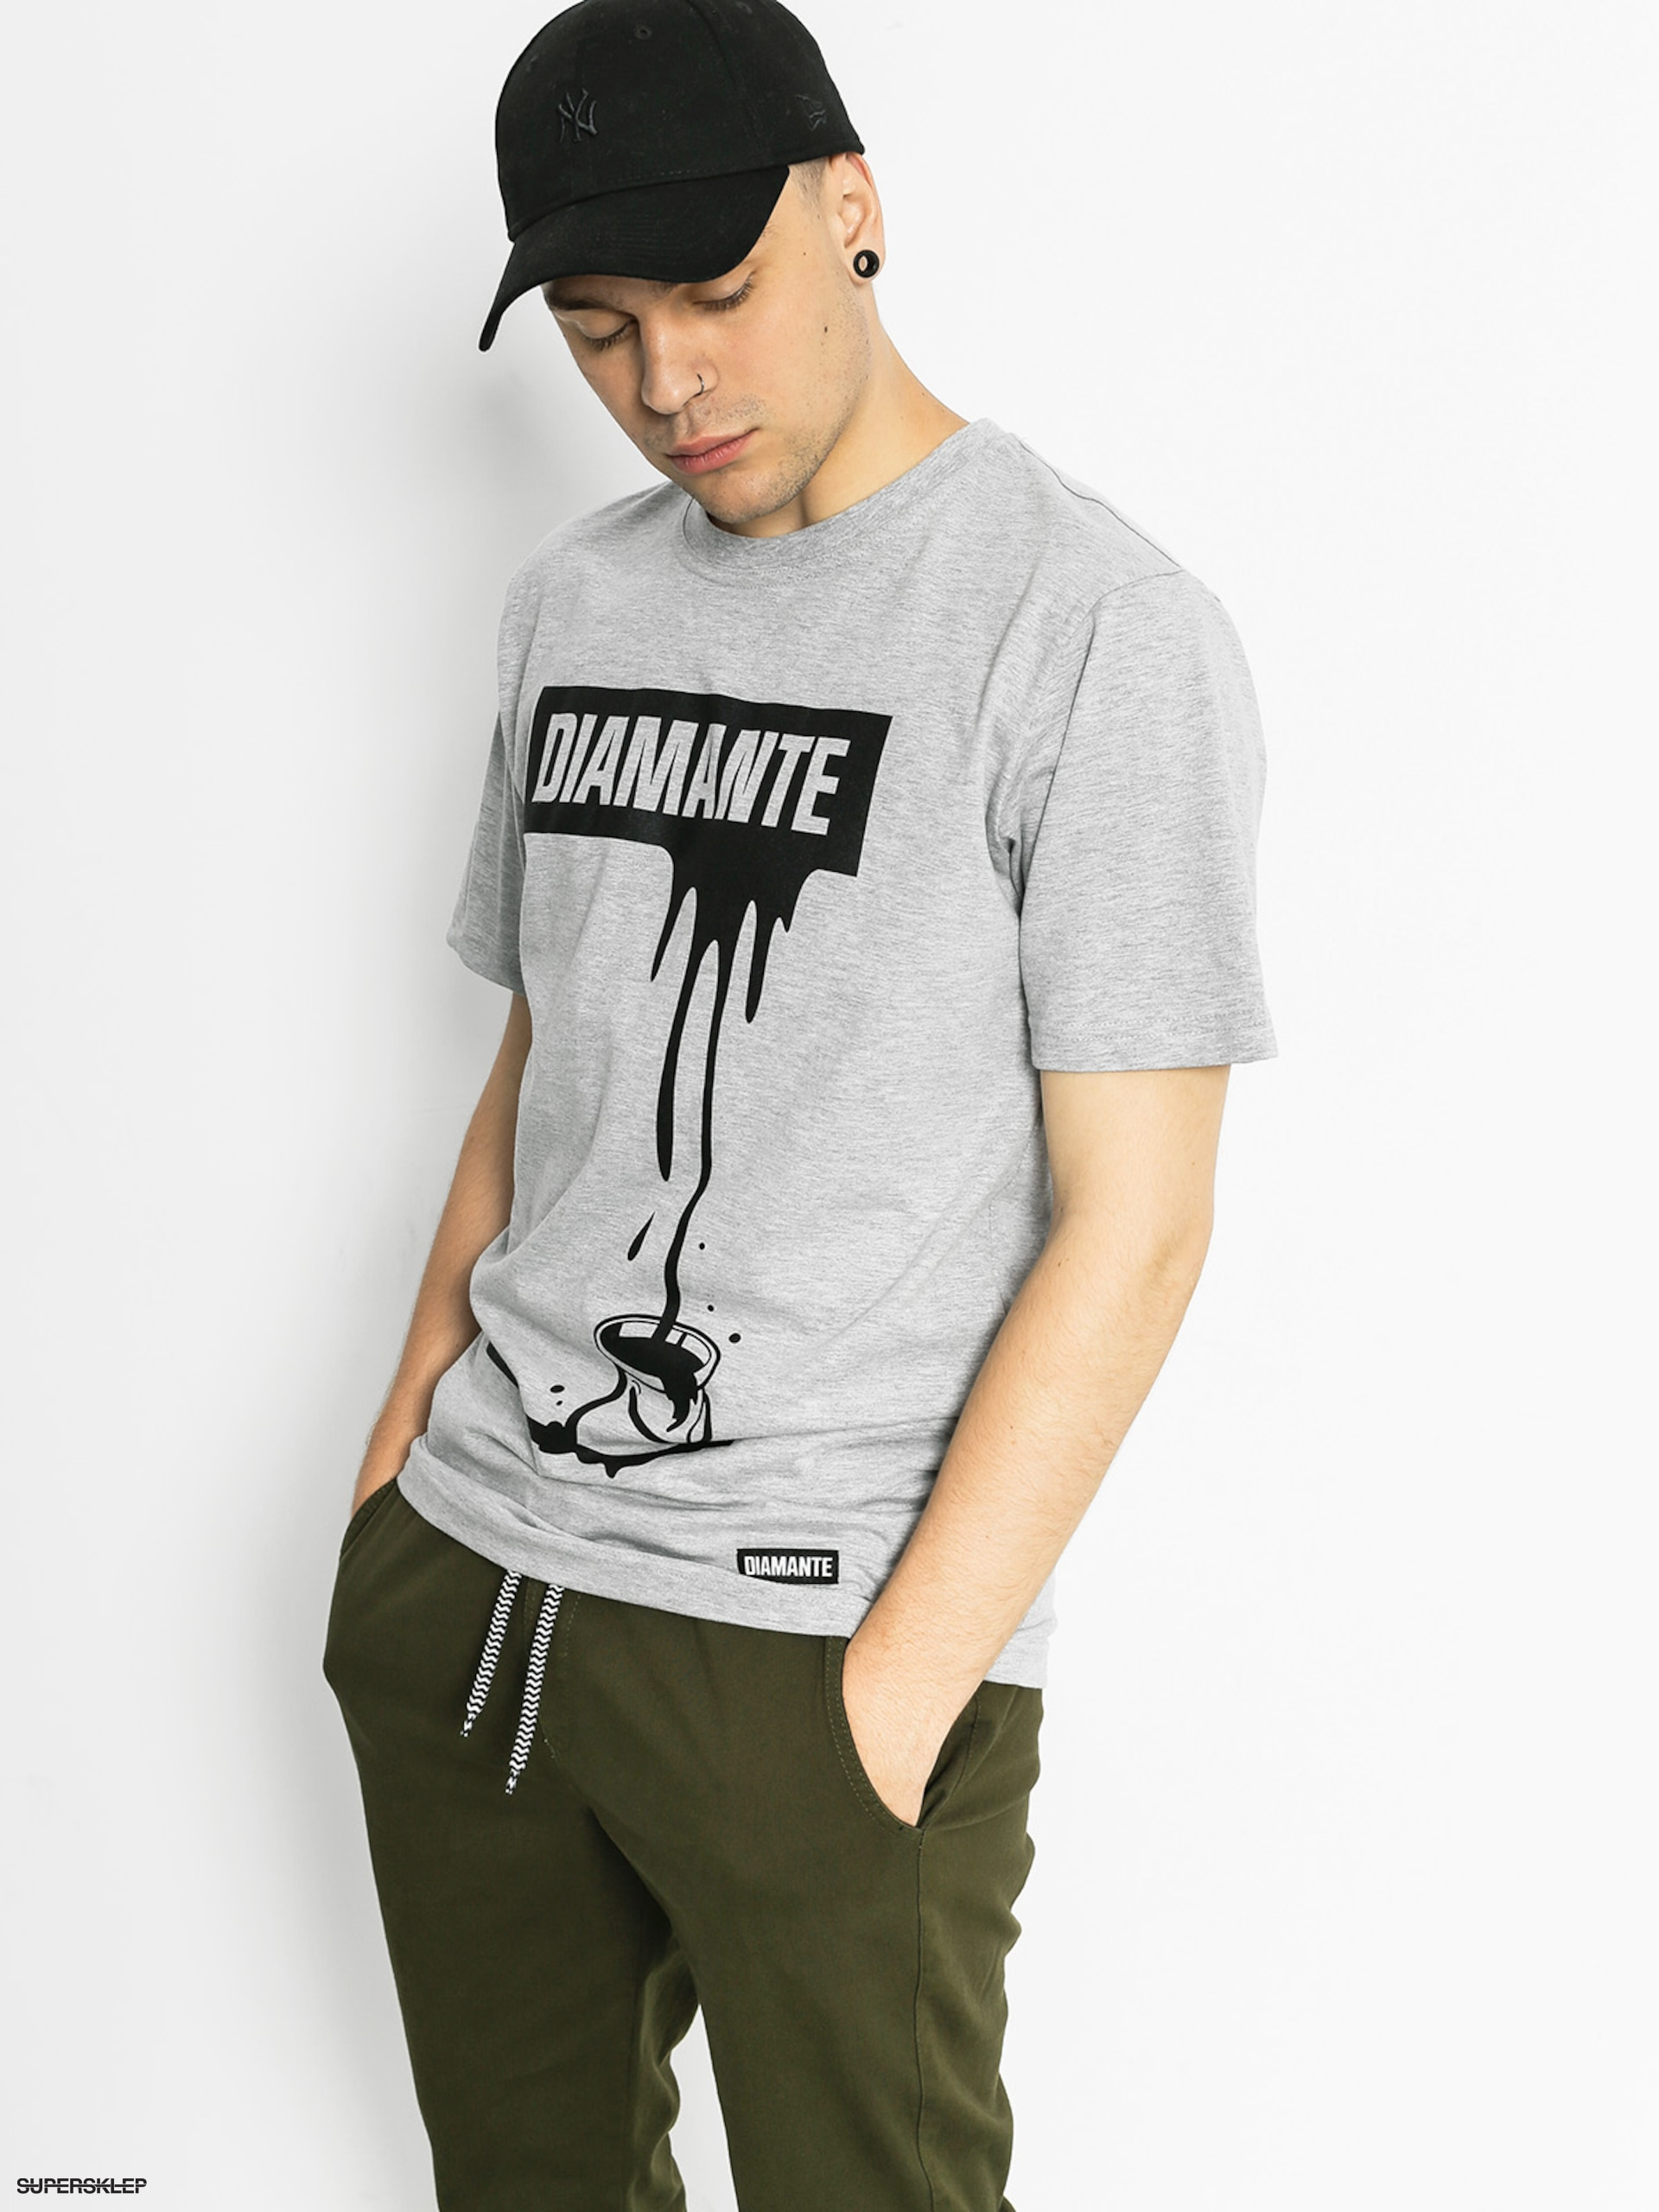 T-shirt Diamante Wear Paint Black (grey)